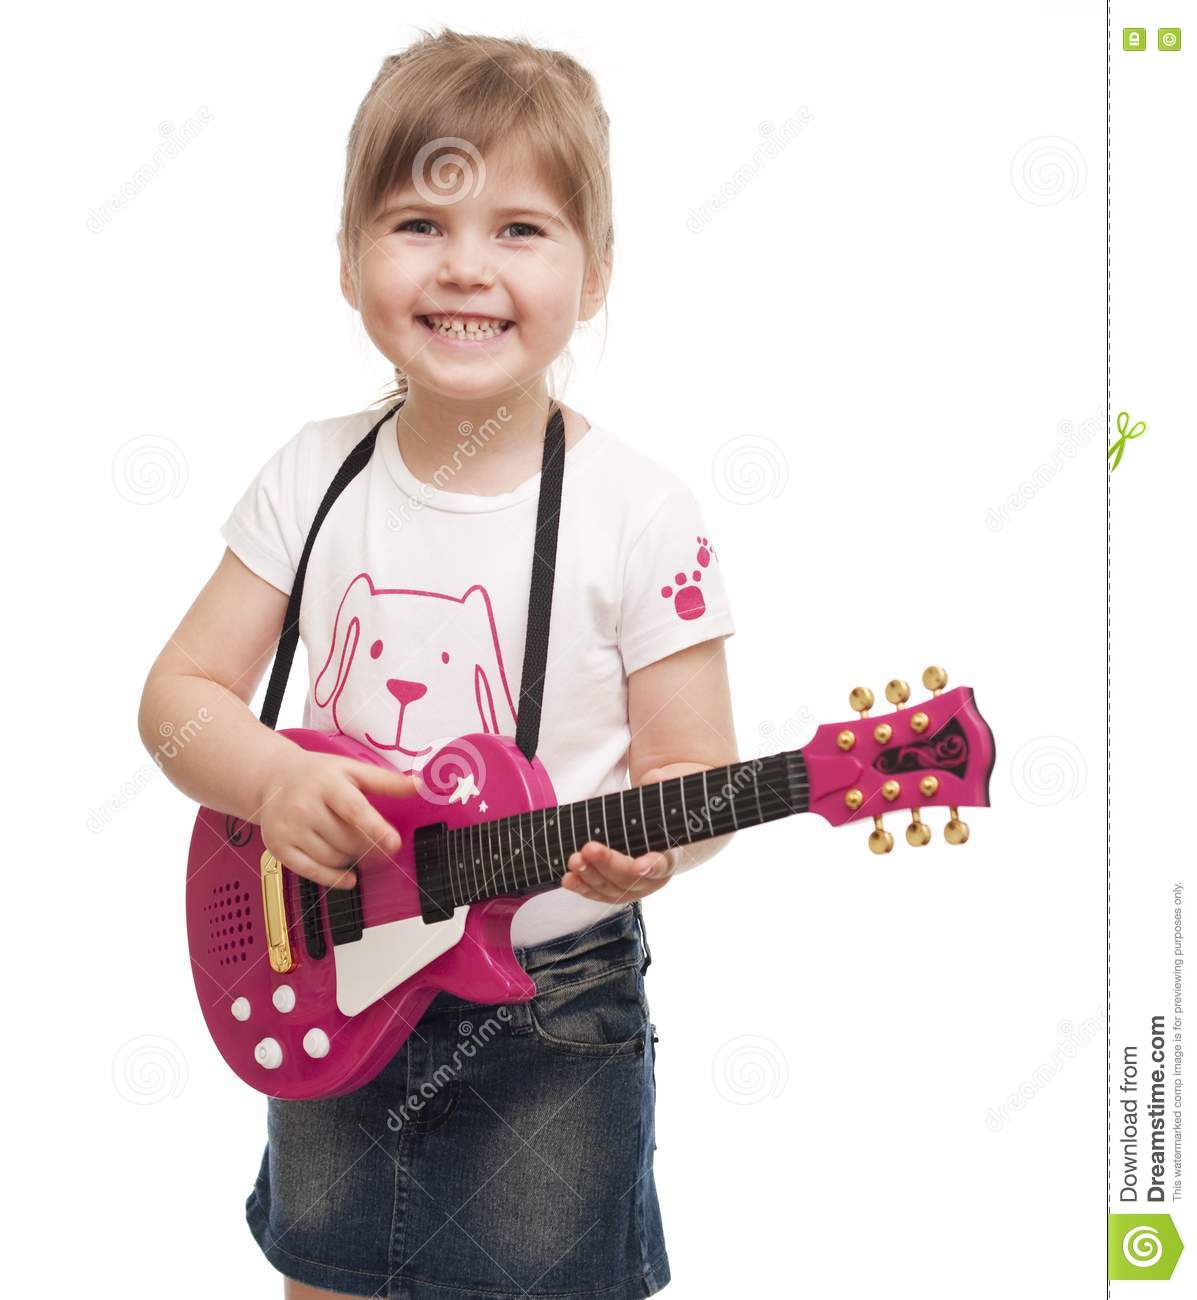 little girl playing toy pink electric guitar royalty free stock photos image 19062238. Black Bedroom Furniture Sets. Home Design Ideas